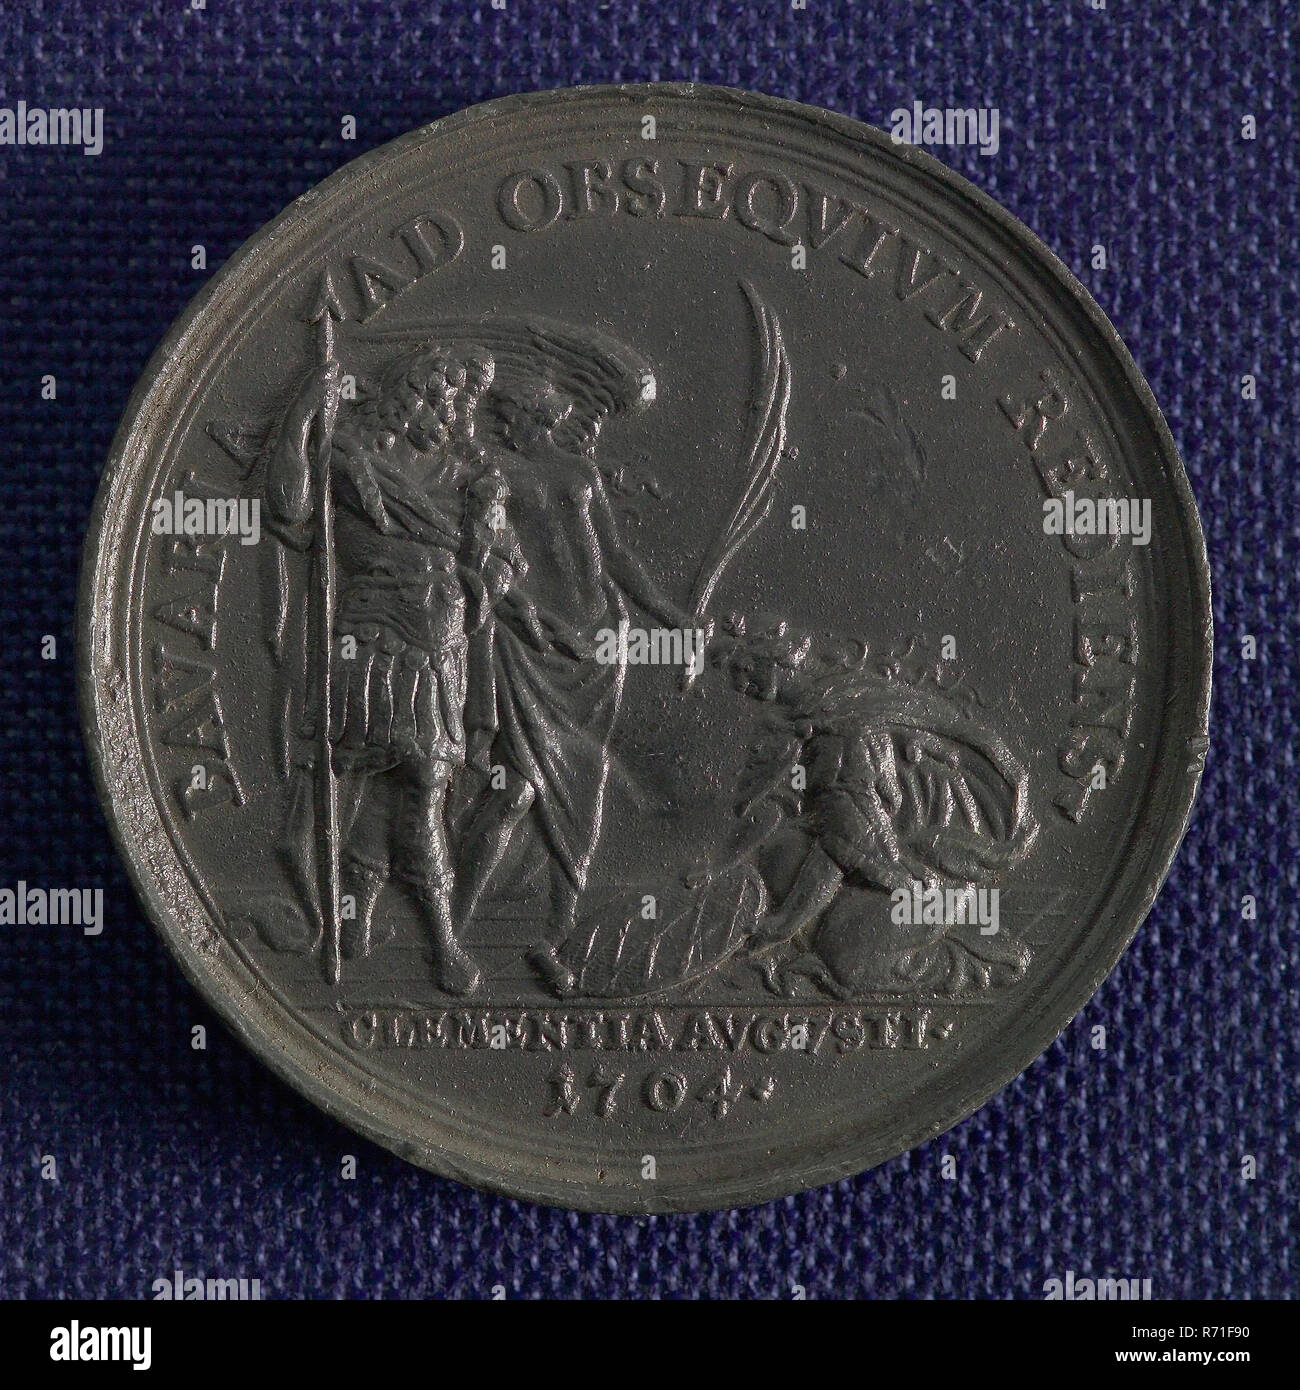 Medal on the subjugation of Bavaria to the German Emperor, penning visual material lead metal, in the foreground liberated cities Augsburg and Ulm in the background French and Bavarian soldier chased by victory in cut: TRANQVILLITAS REDVX. legend: AVGVSTA VIND. LIBERATA. VLMA RECVPER. HOSTES VLTRA RHEN. FVGATI. (Augsburg redeemed Ulm regained and the enemies hunted across the Rhine rest restored) Emperor Germany Bavaria Augsburg Ulm - Stock Image